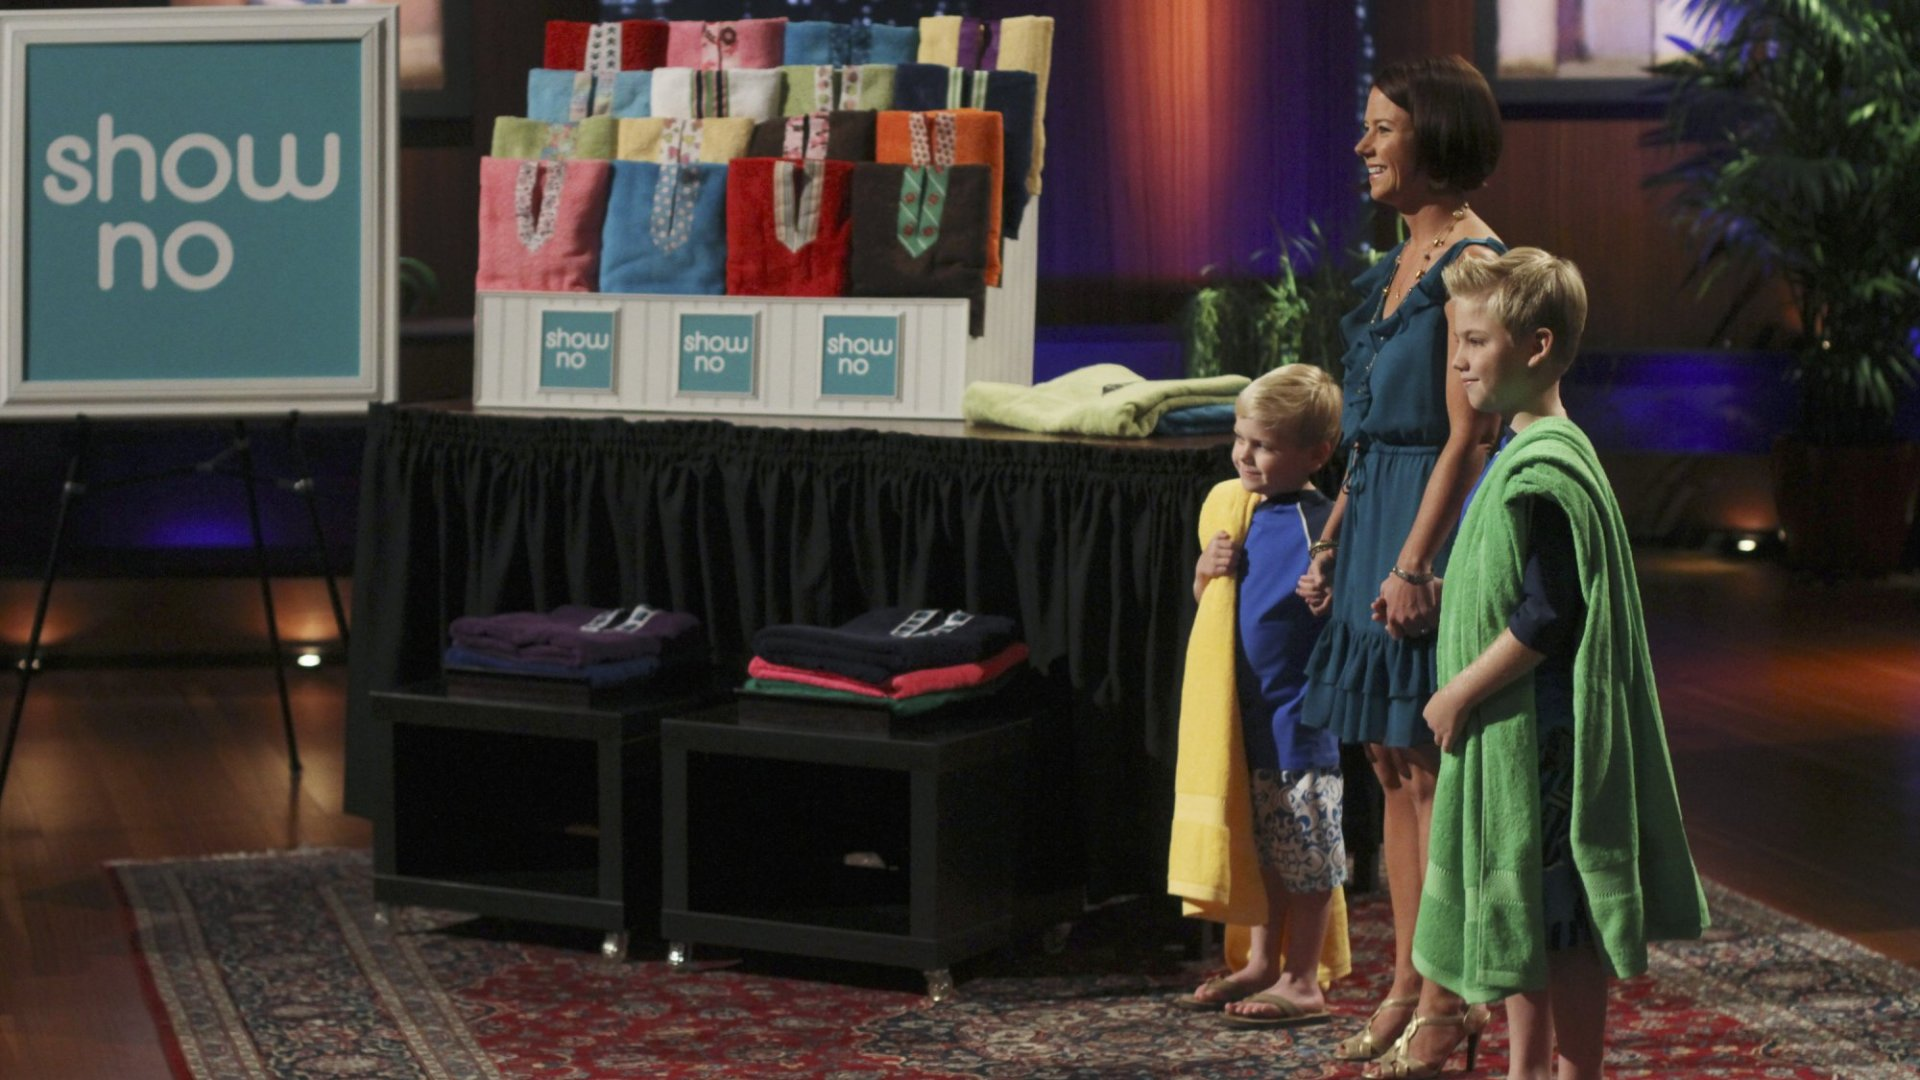 Shark Tank Episode featuring SHELLY EHLER (SHOWNO) - (Photo by Michael ​Ansell/ABC via Getty Images)